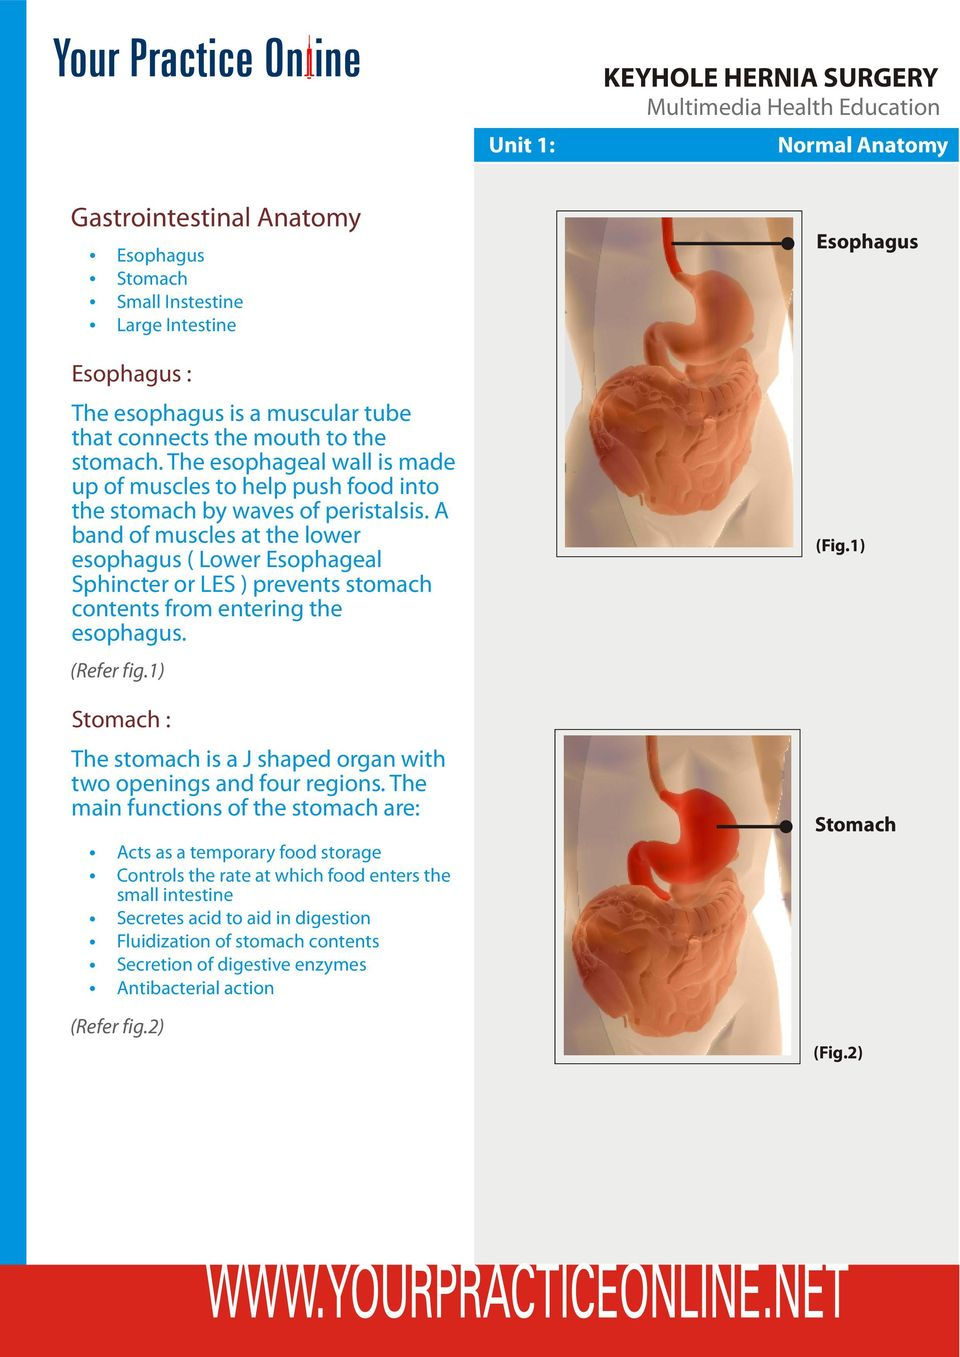 A band of muscles at the lower esophagus ( Lower Esophageal Sphincter or LES ) prevents stomach contents from entering the esophagus. (Refer fig.